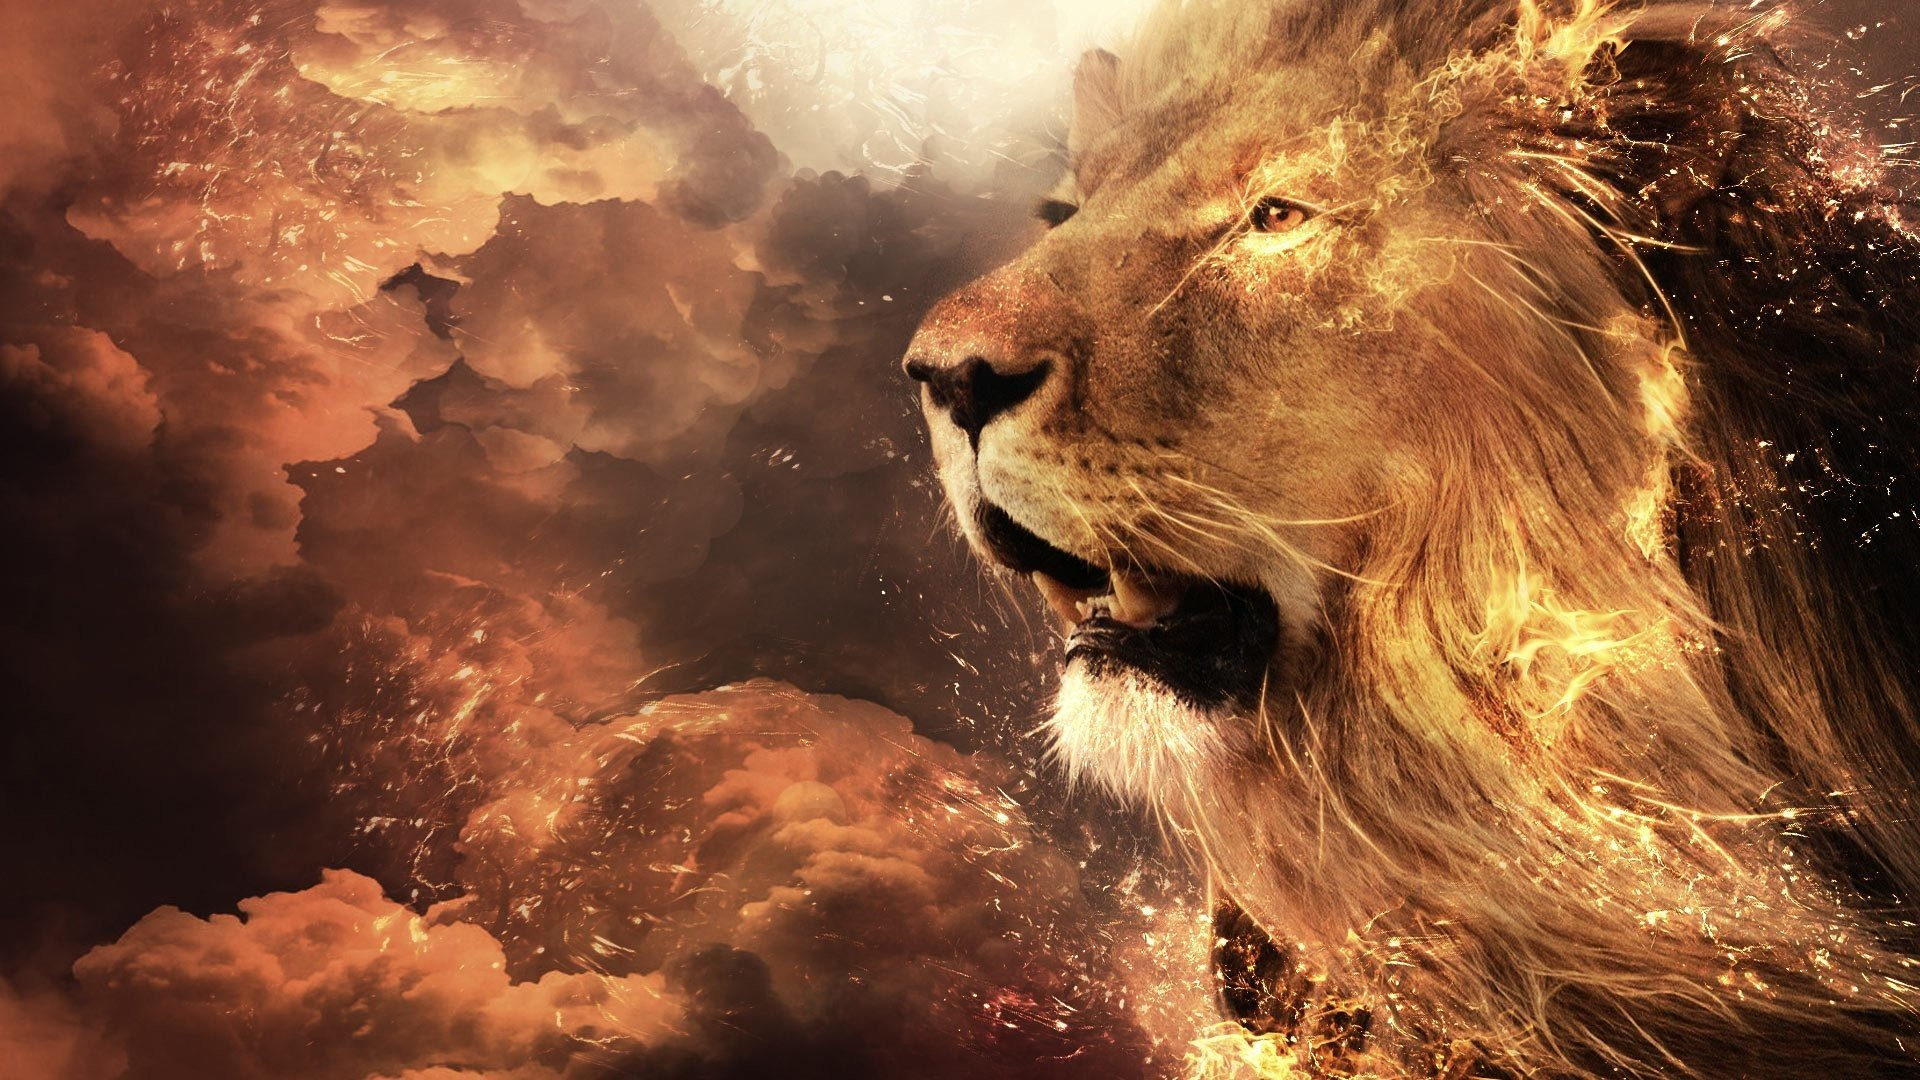 Lion of Judah Wallpapers 64 images 1920x1080